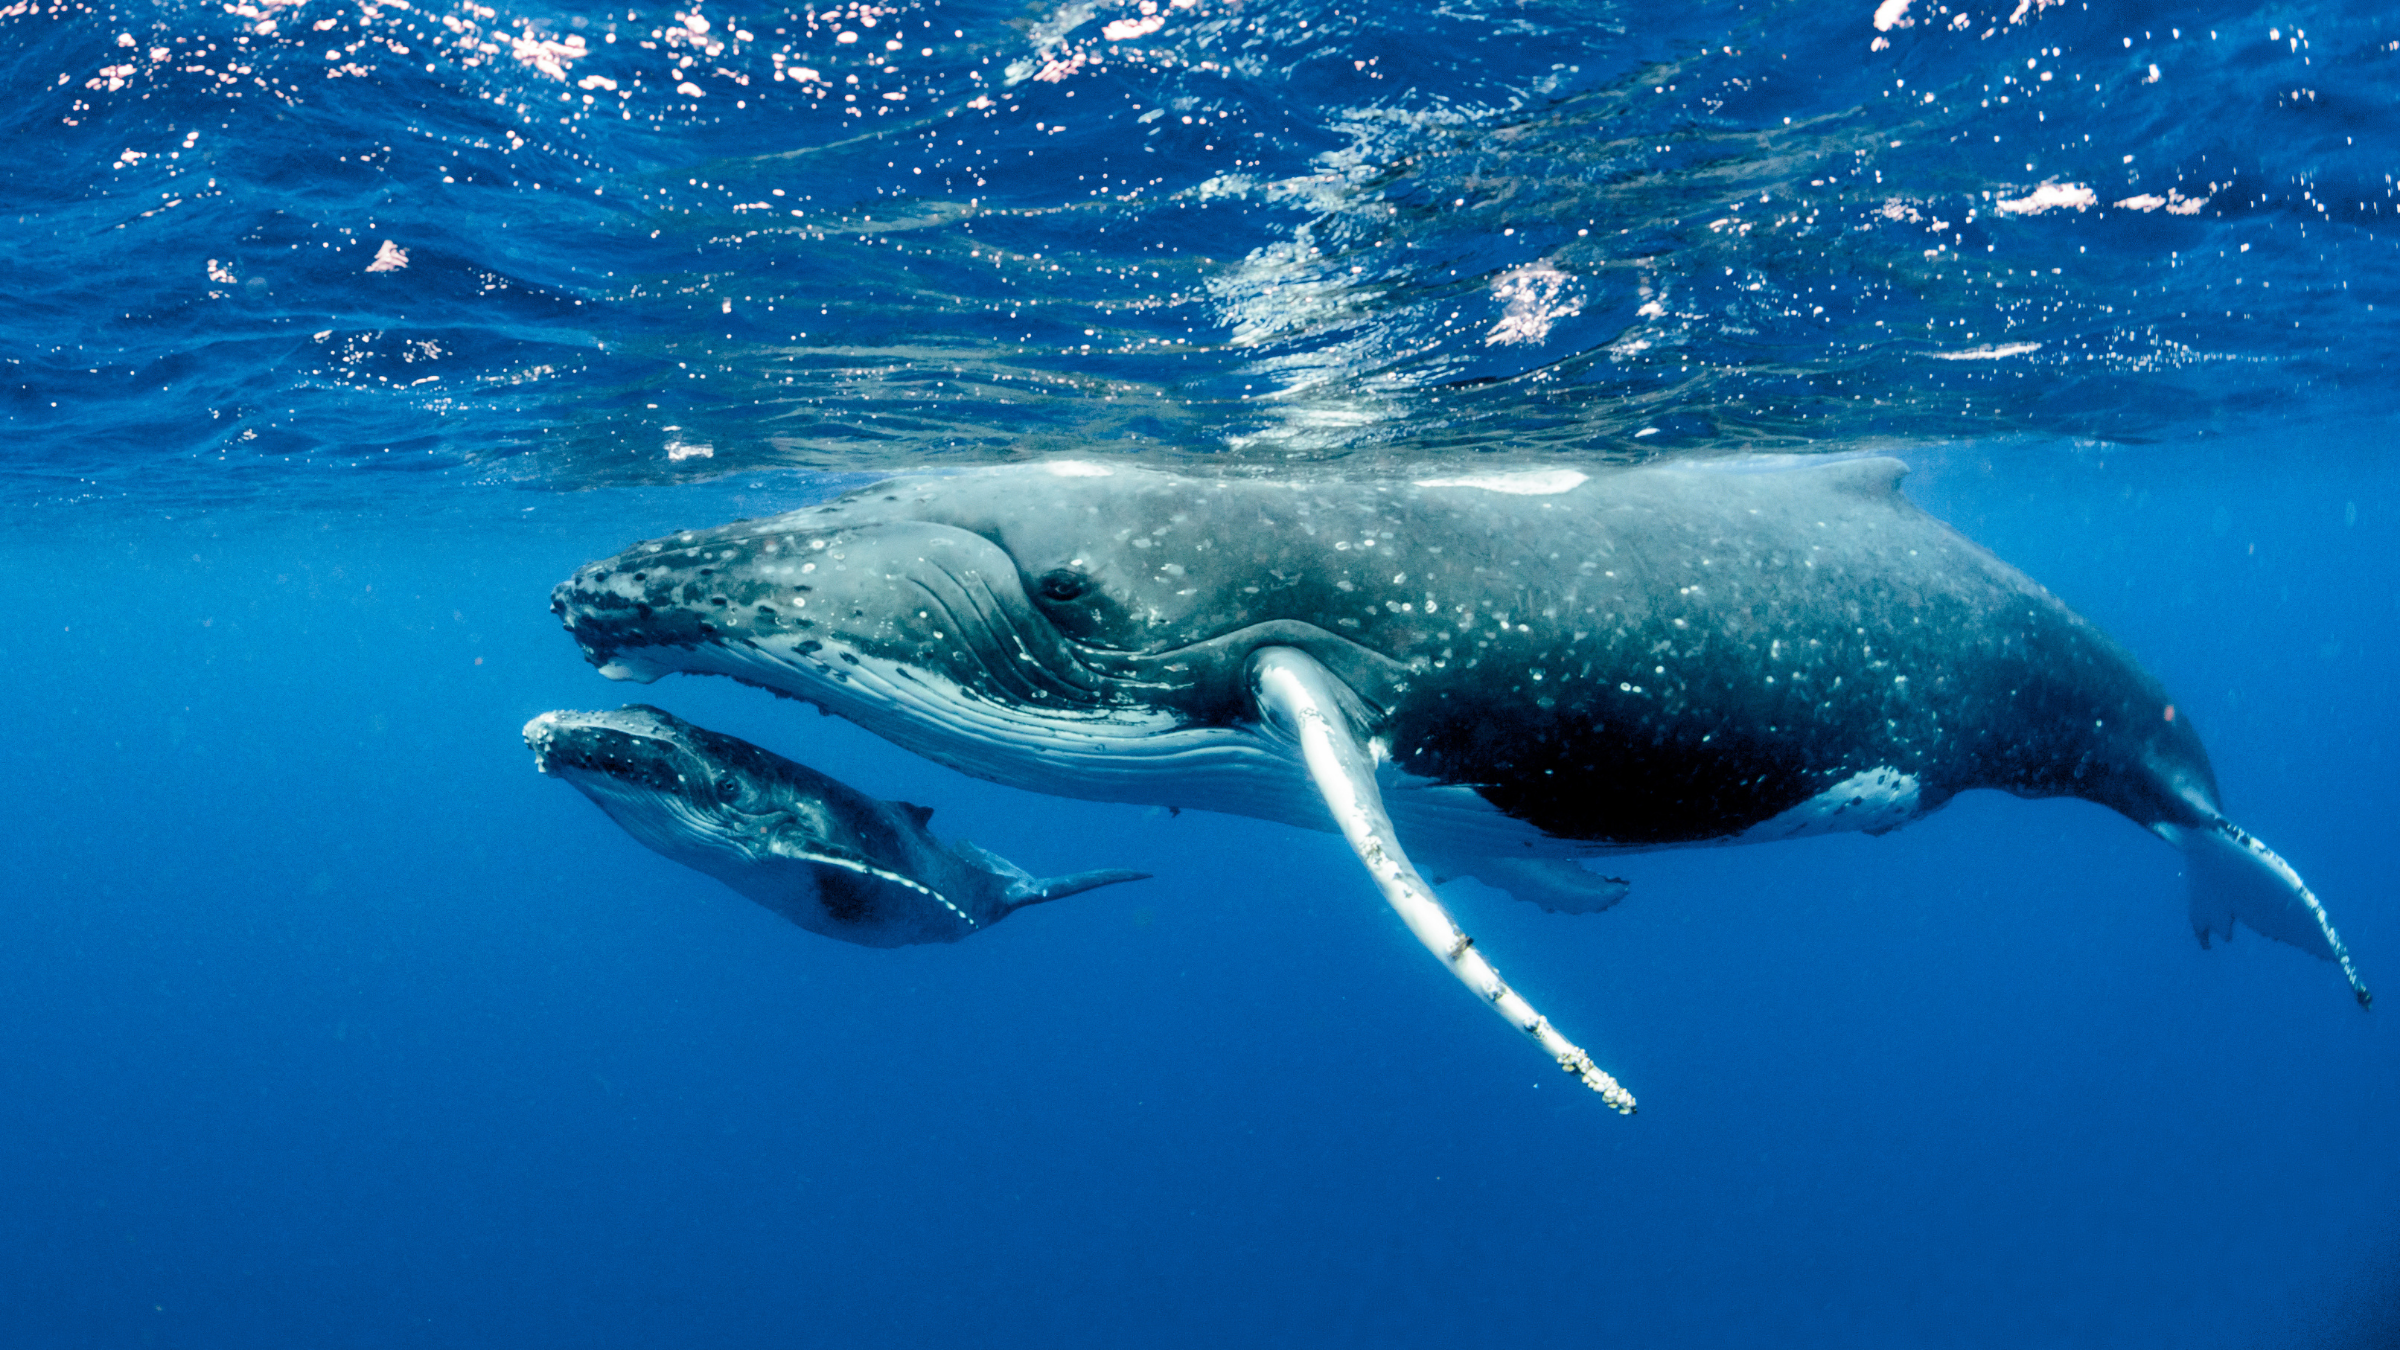 Plastic Free July - whales